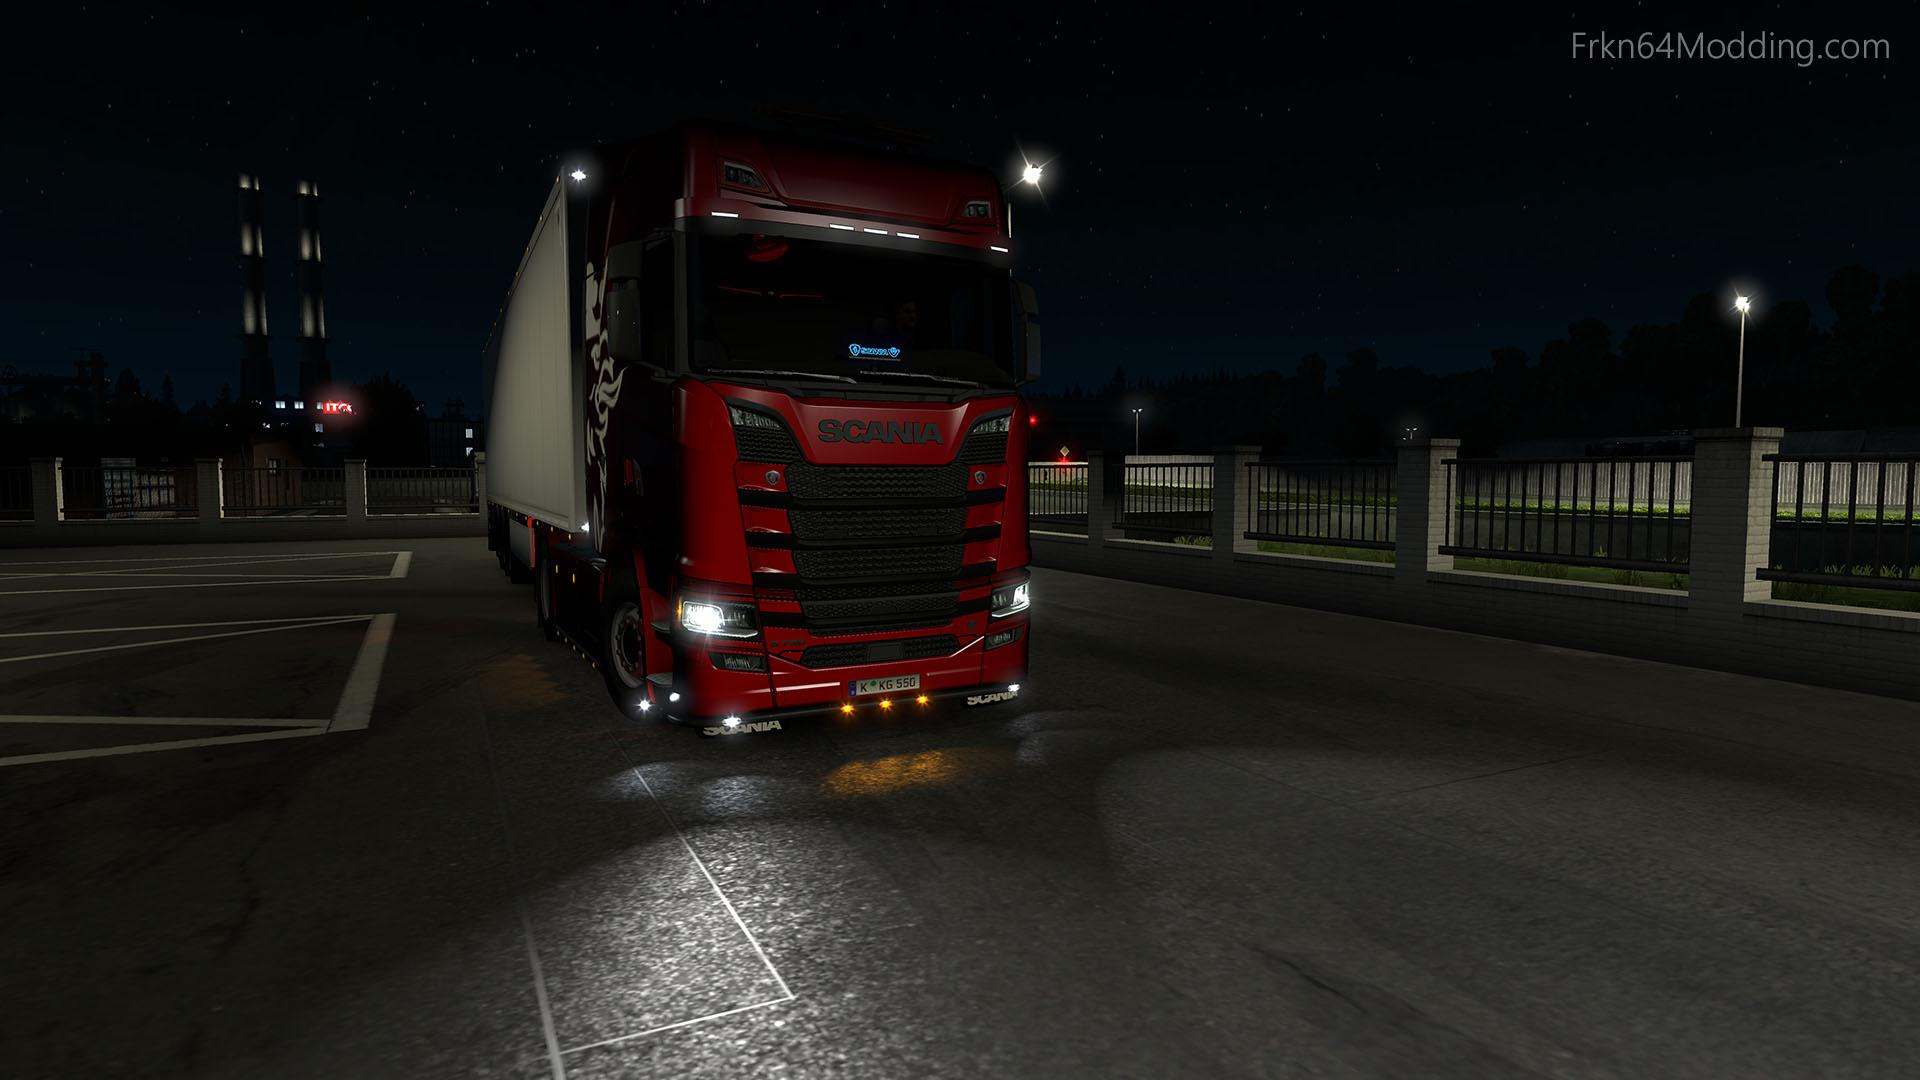 Realistic Vehicle Lights v3.0 by Frkn64